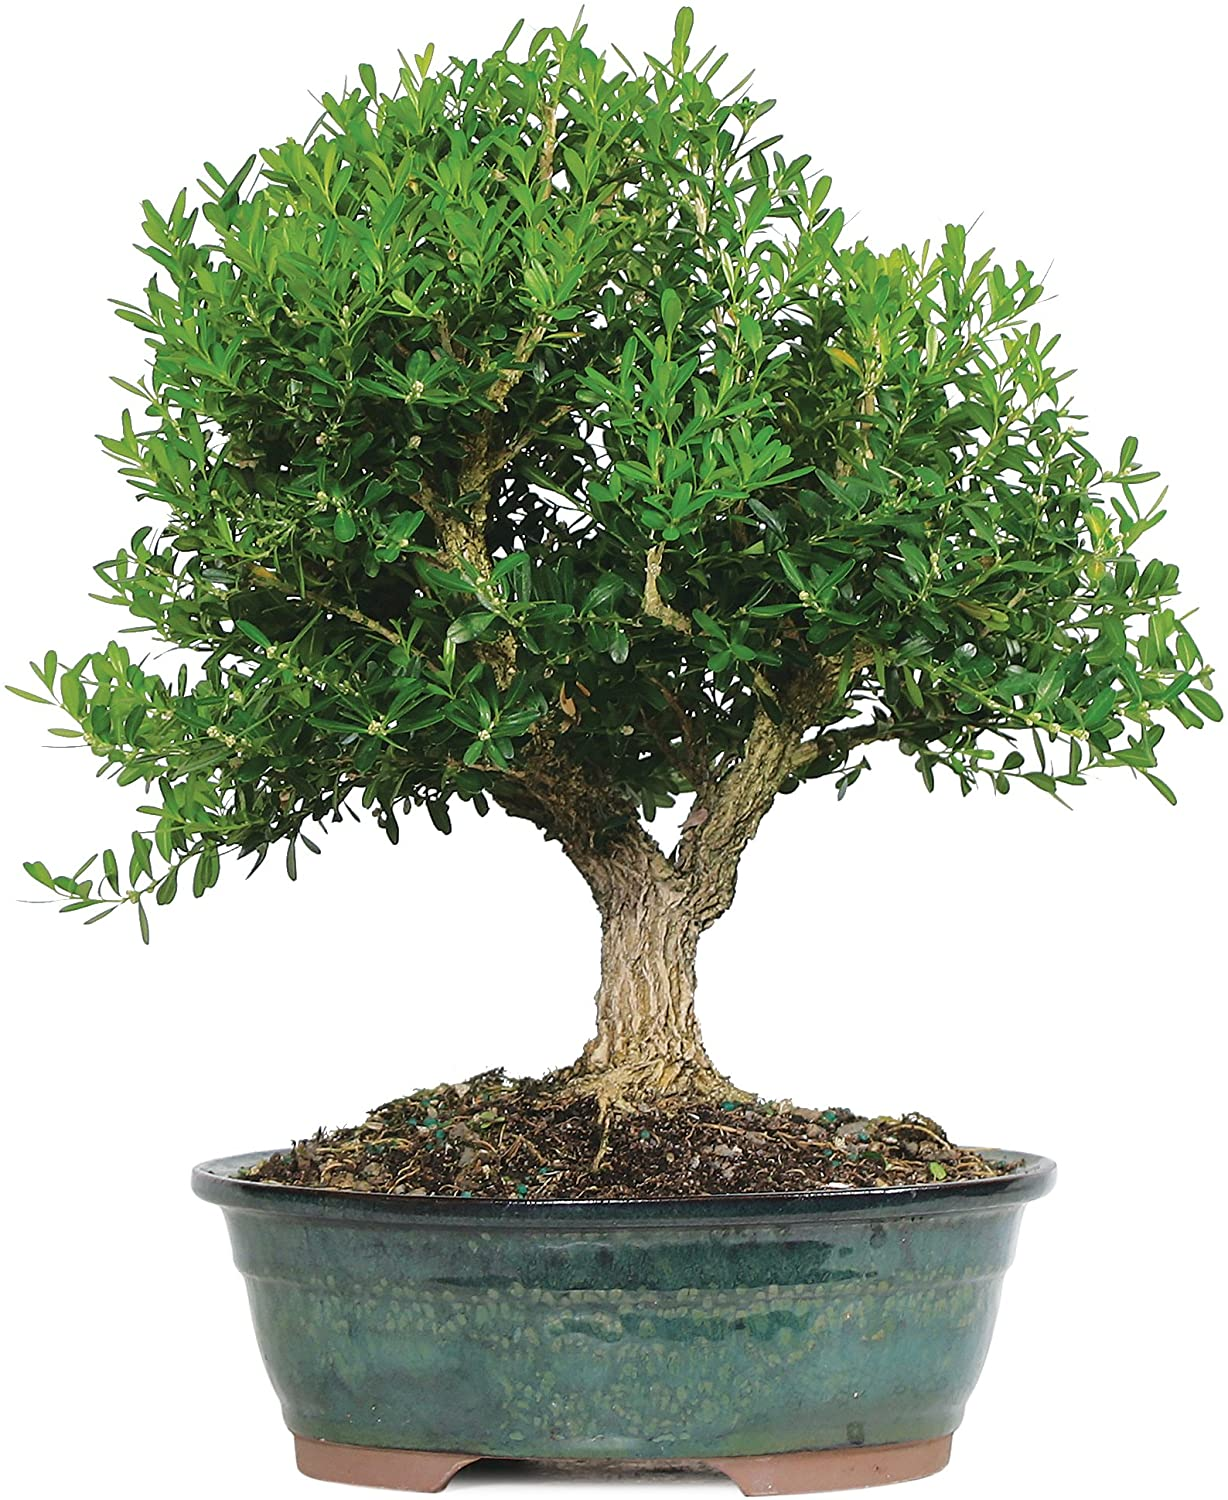 Amazon Com Brussel S Live Harland Boxwood Outdoor Bonsai Tree 8 Years Old 10 To 14 Tall With Decorative Container Garden Outdoor